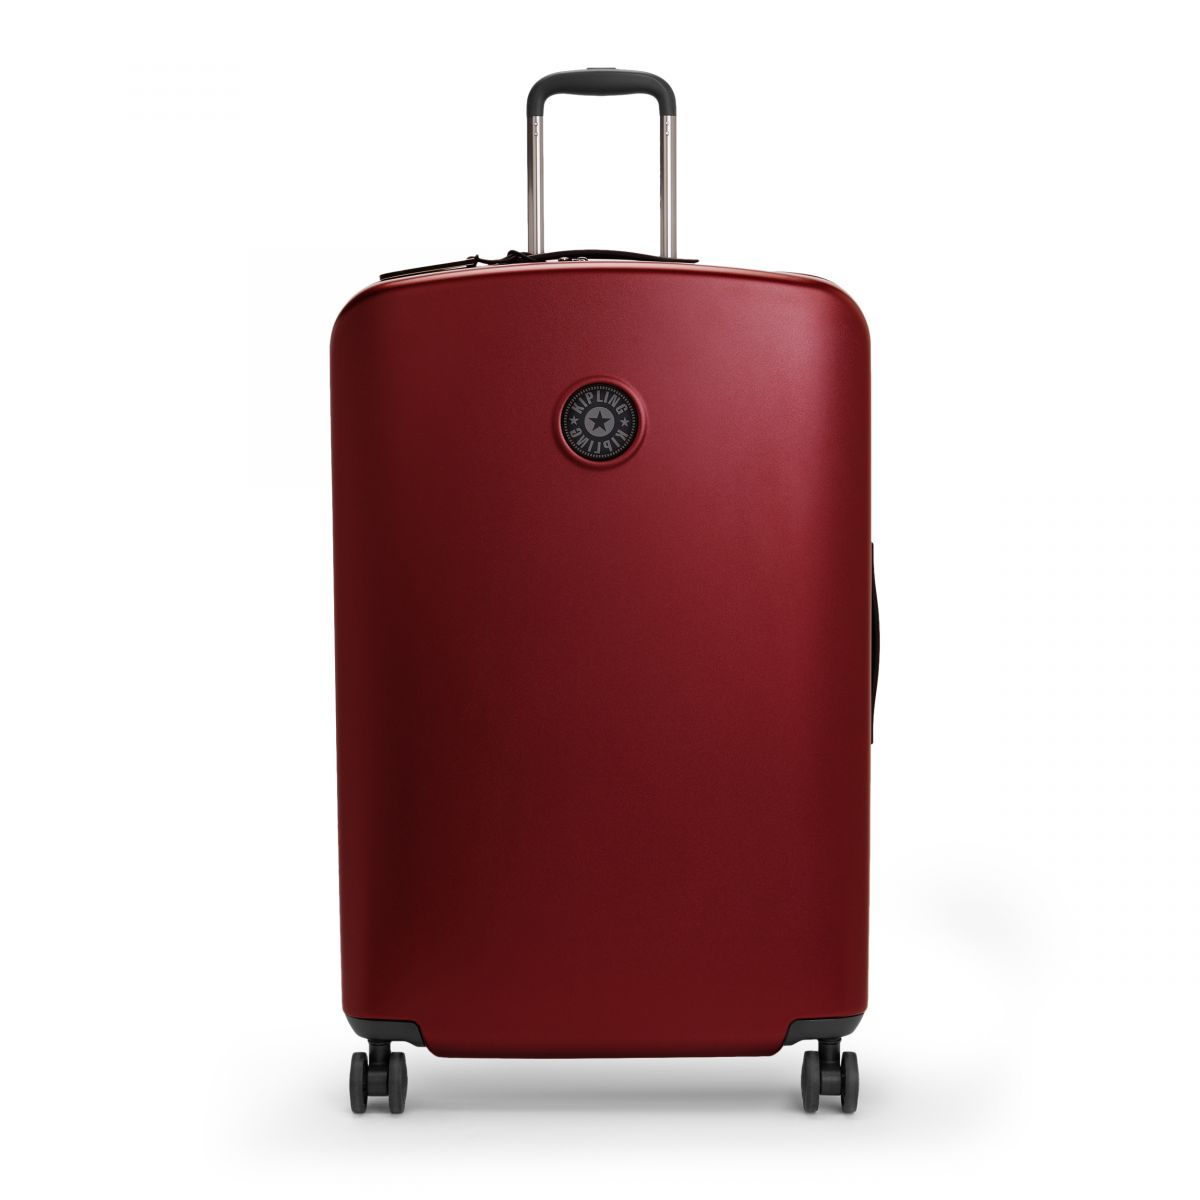 CURIOSITY L LUGGAGE by Kipling - Front view